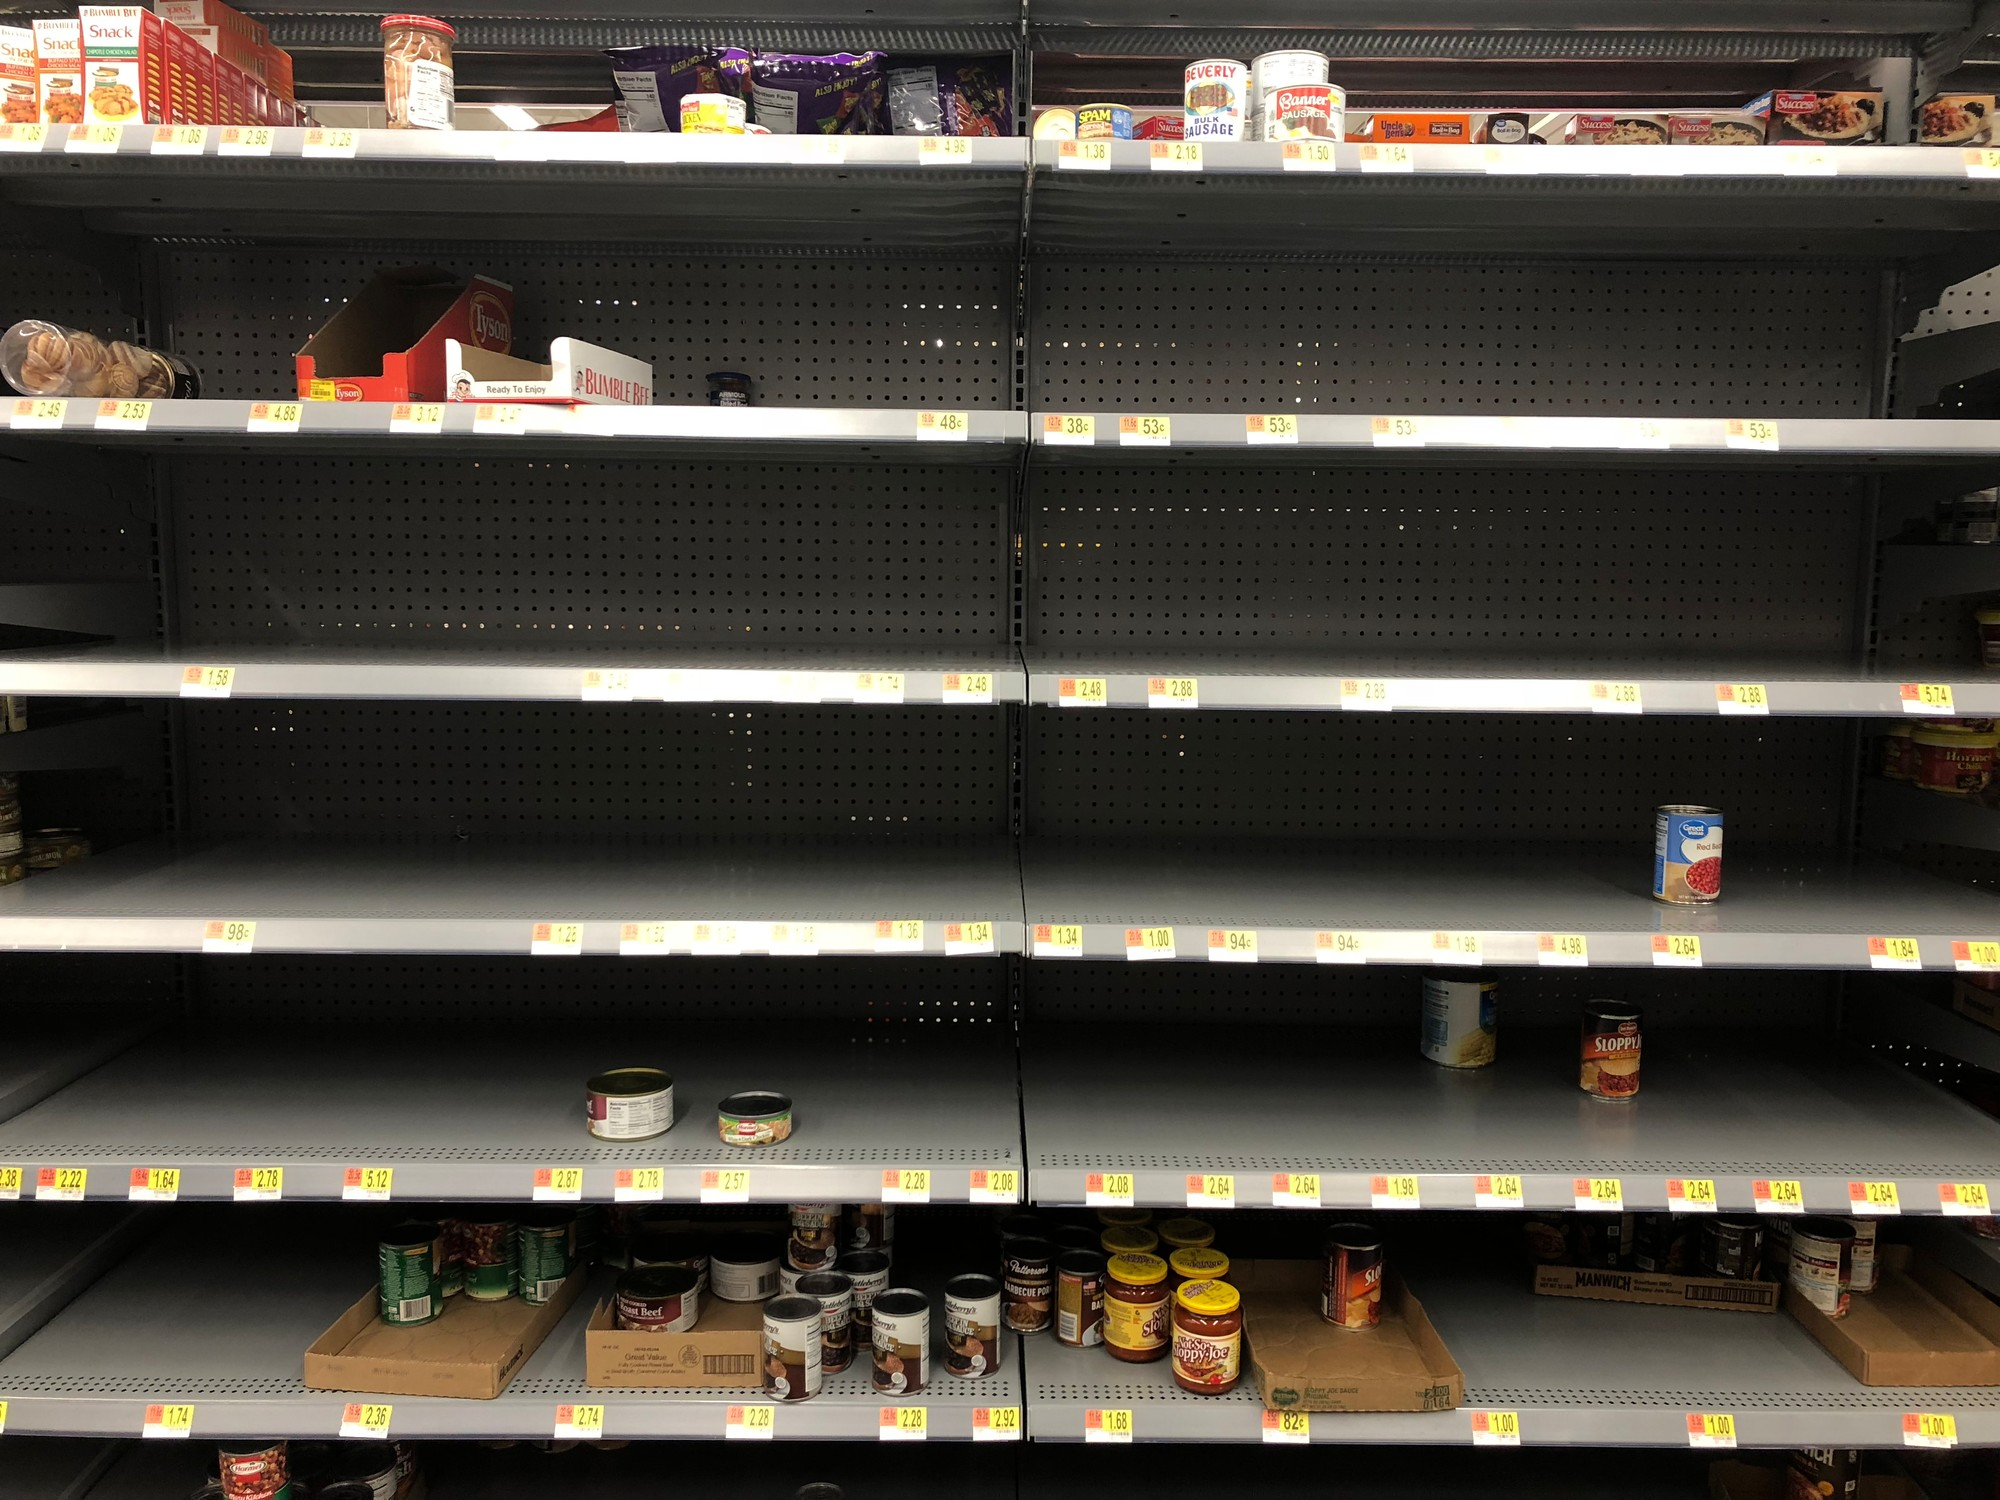 The bean aisle at the Walmart Neighborhood Market on Pinewood Road is near empty on Wednesday, Sept. 12.